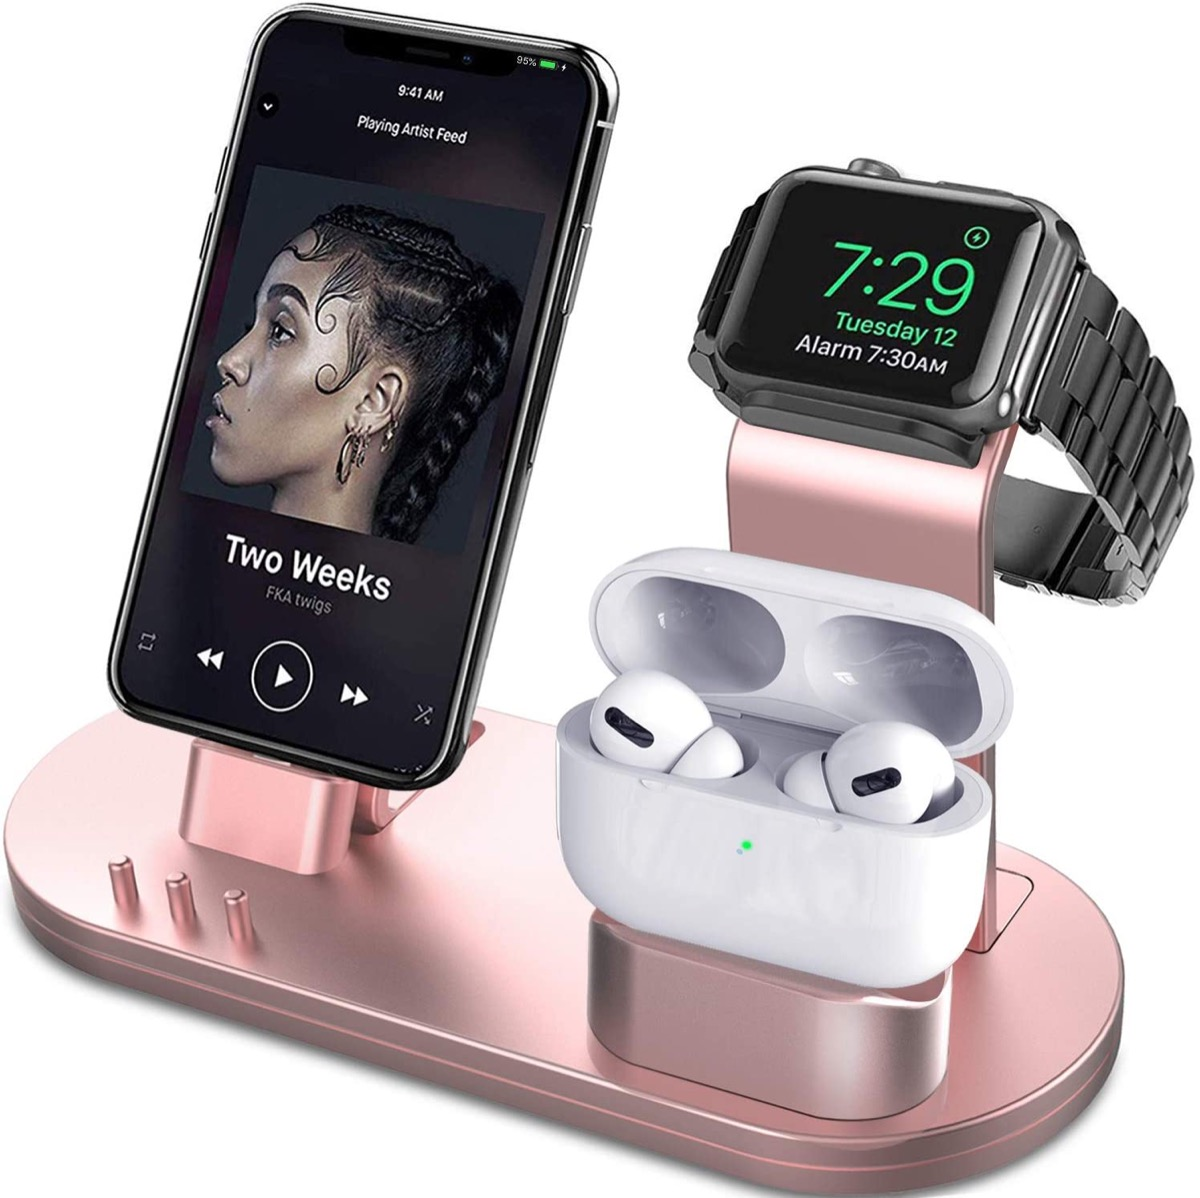 rose gold device charging stand with apple watch, earbuds, and iphone